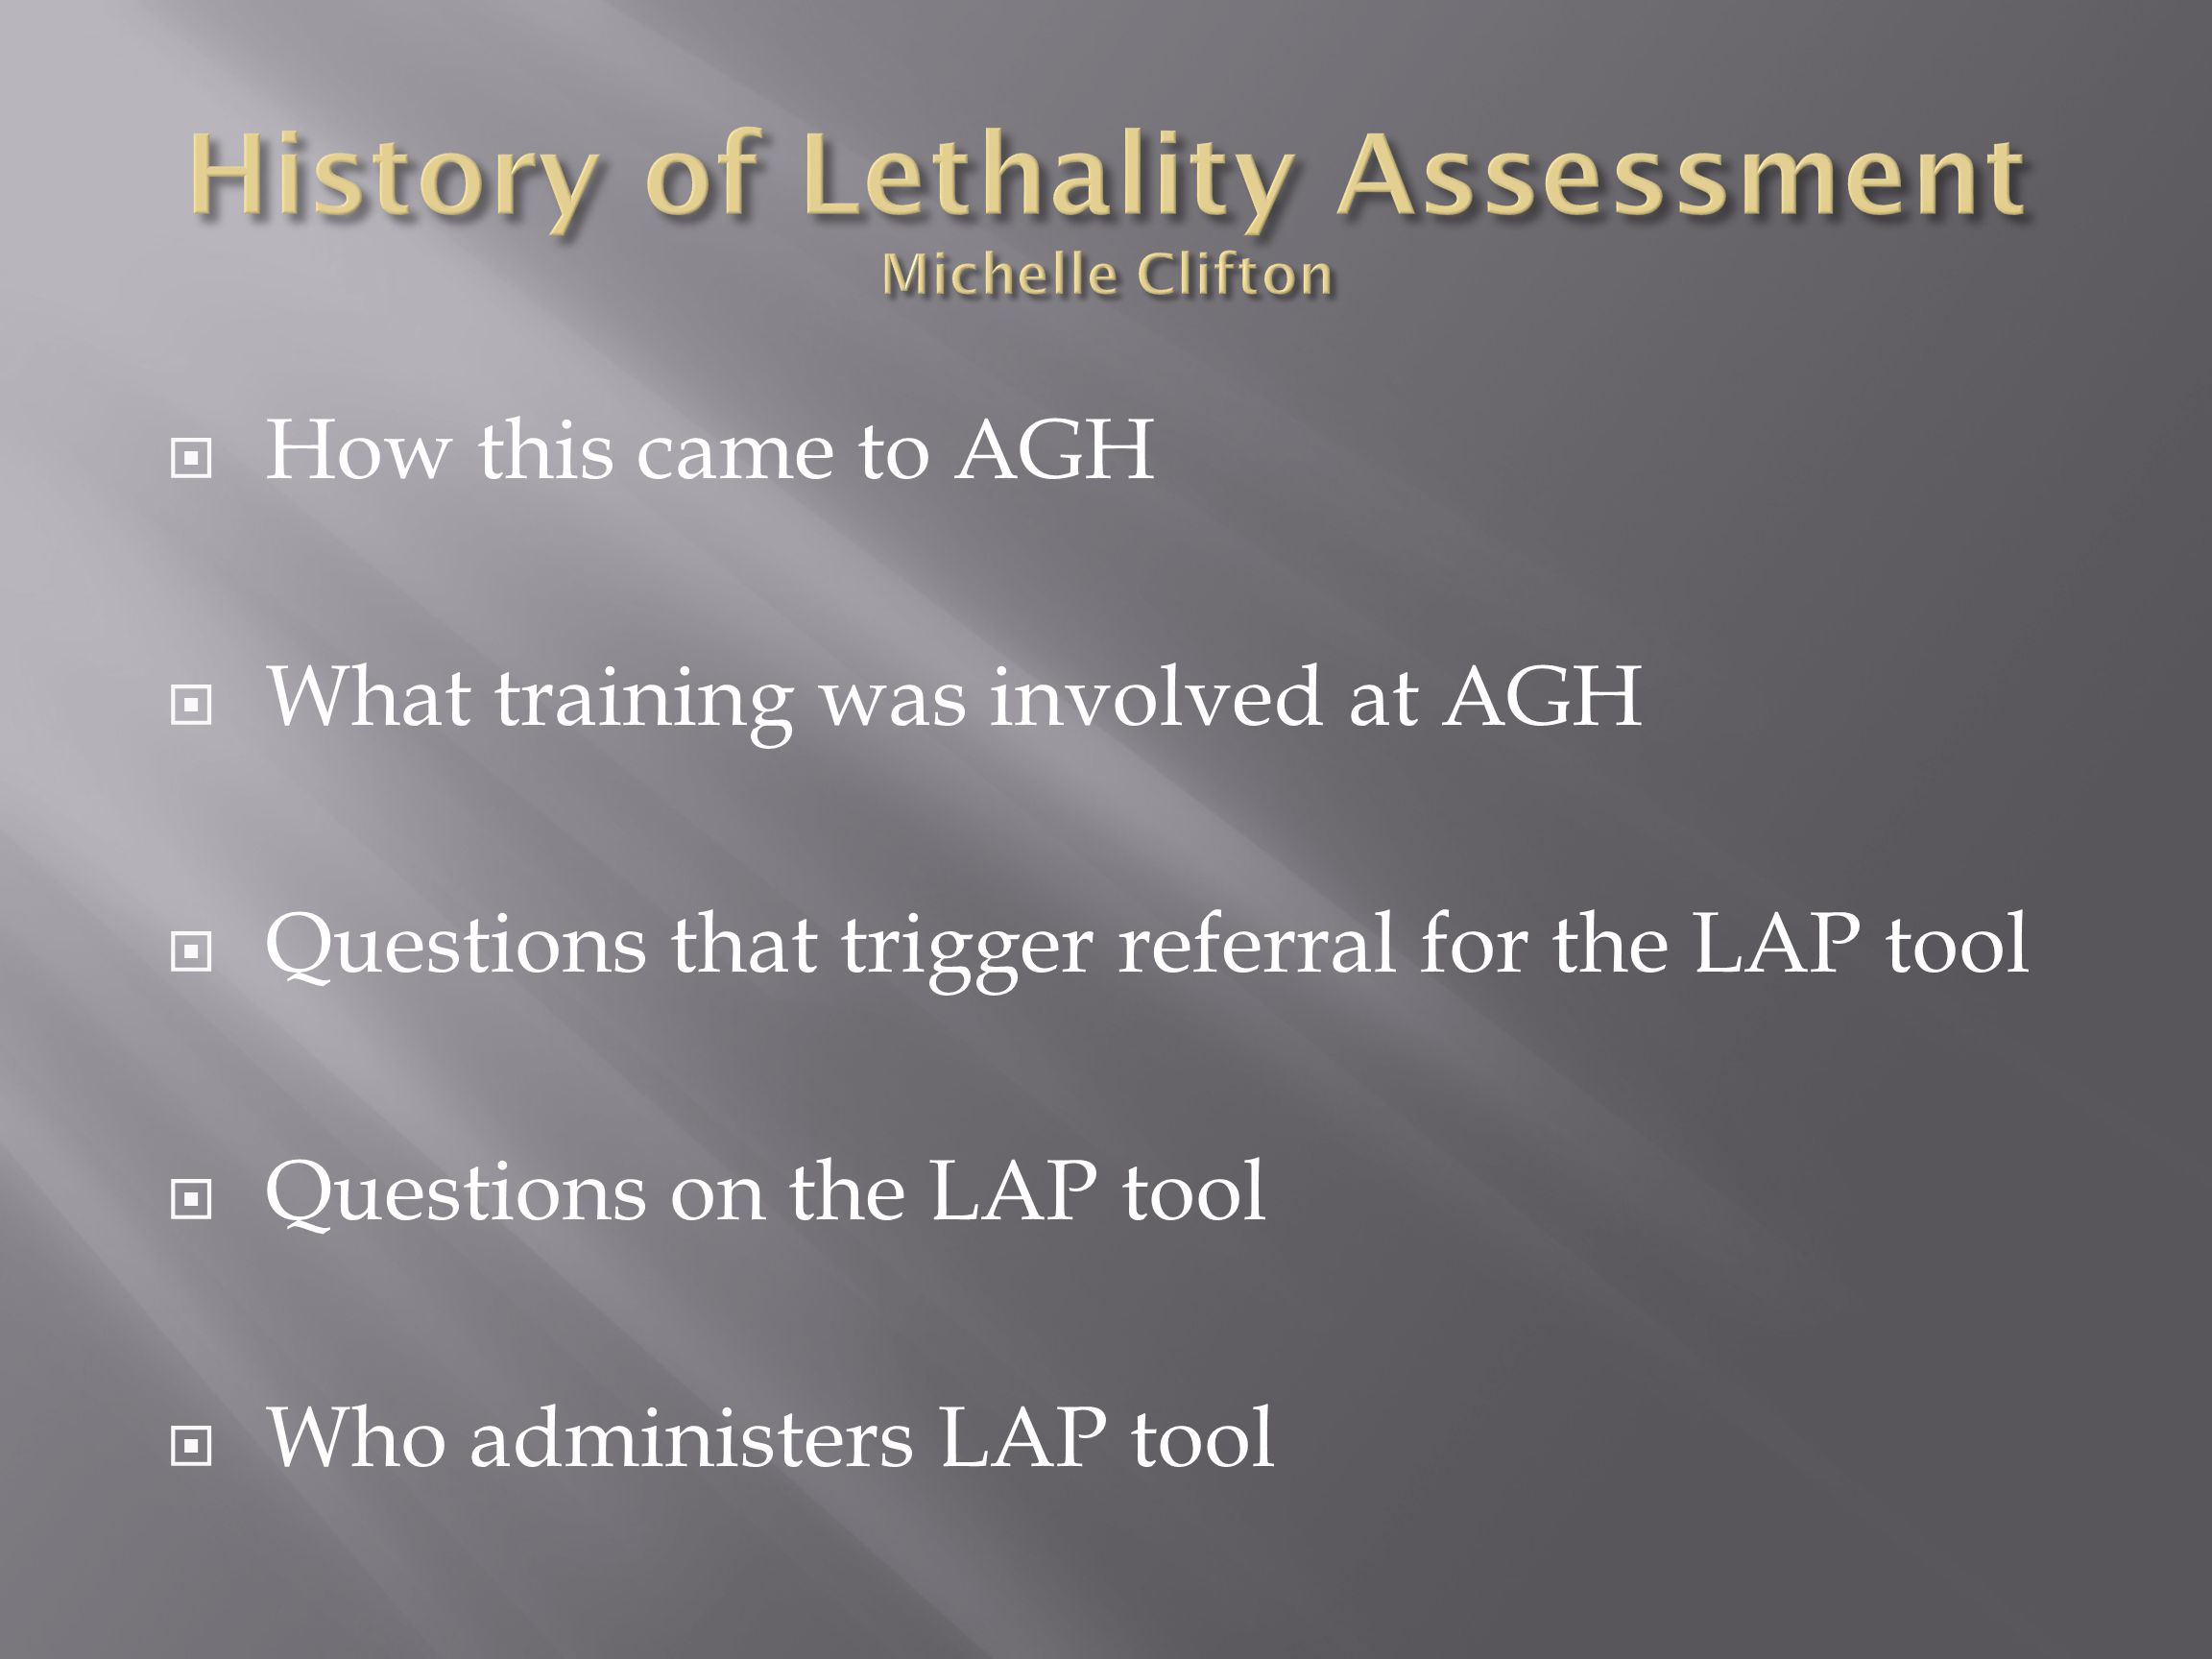  How this came to AGH  What training was involved at AGH  Questions that trigger referral for the LAP tool  Questions on the LAP tool  Who administers LAP tool